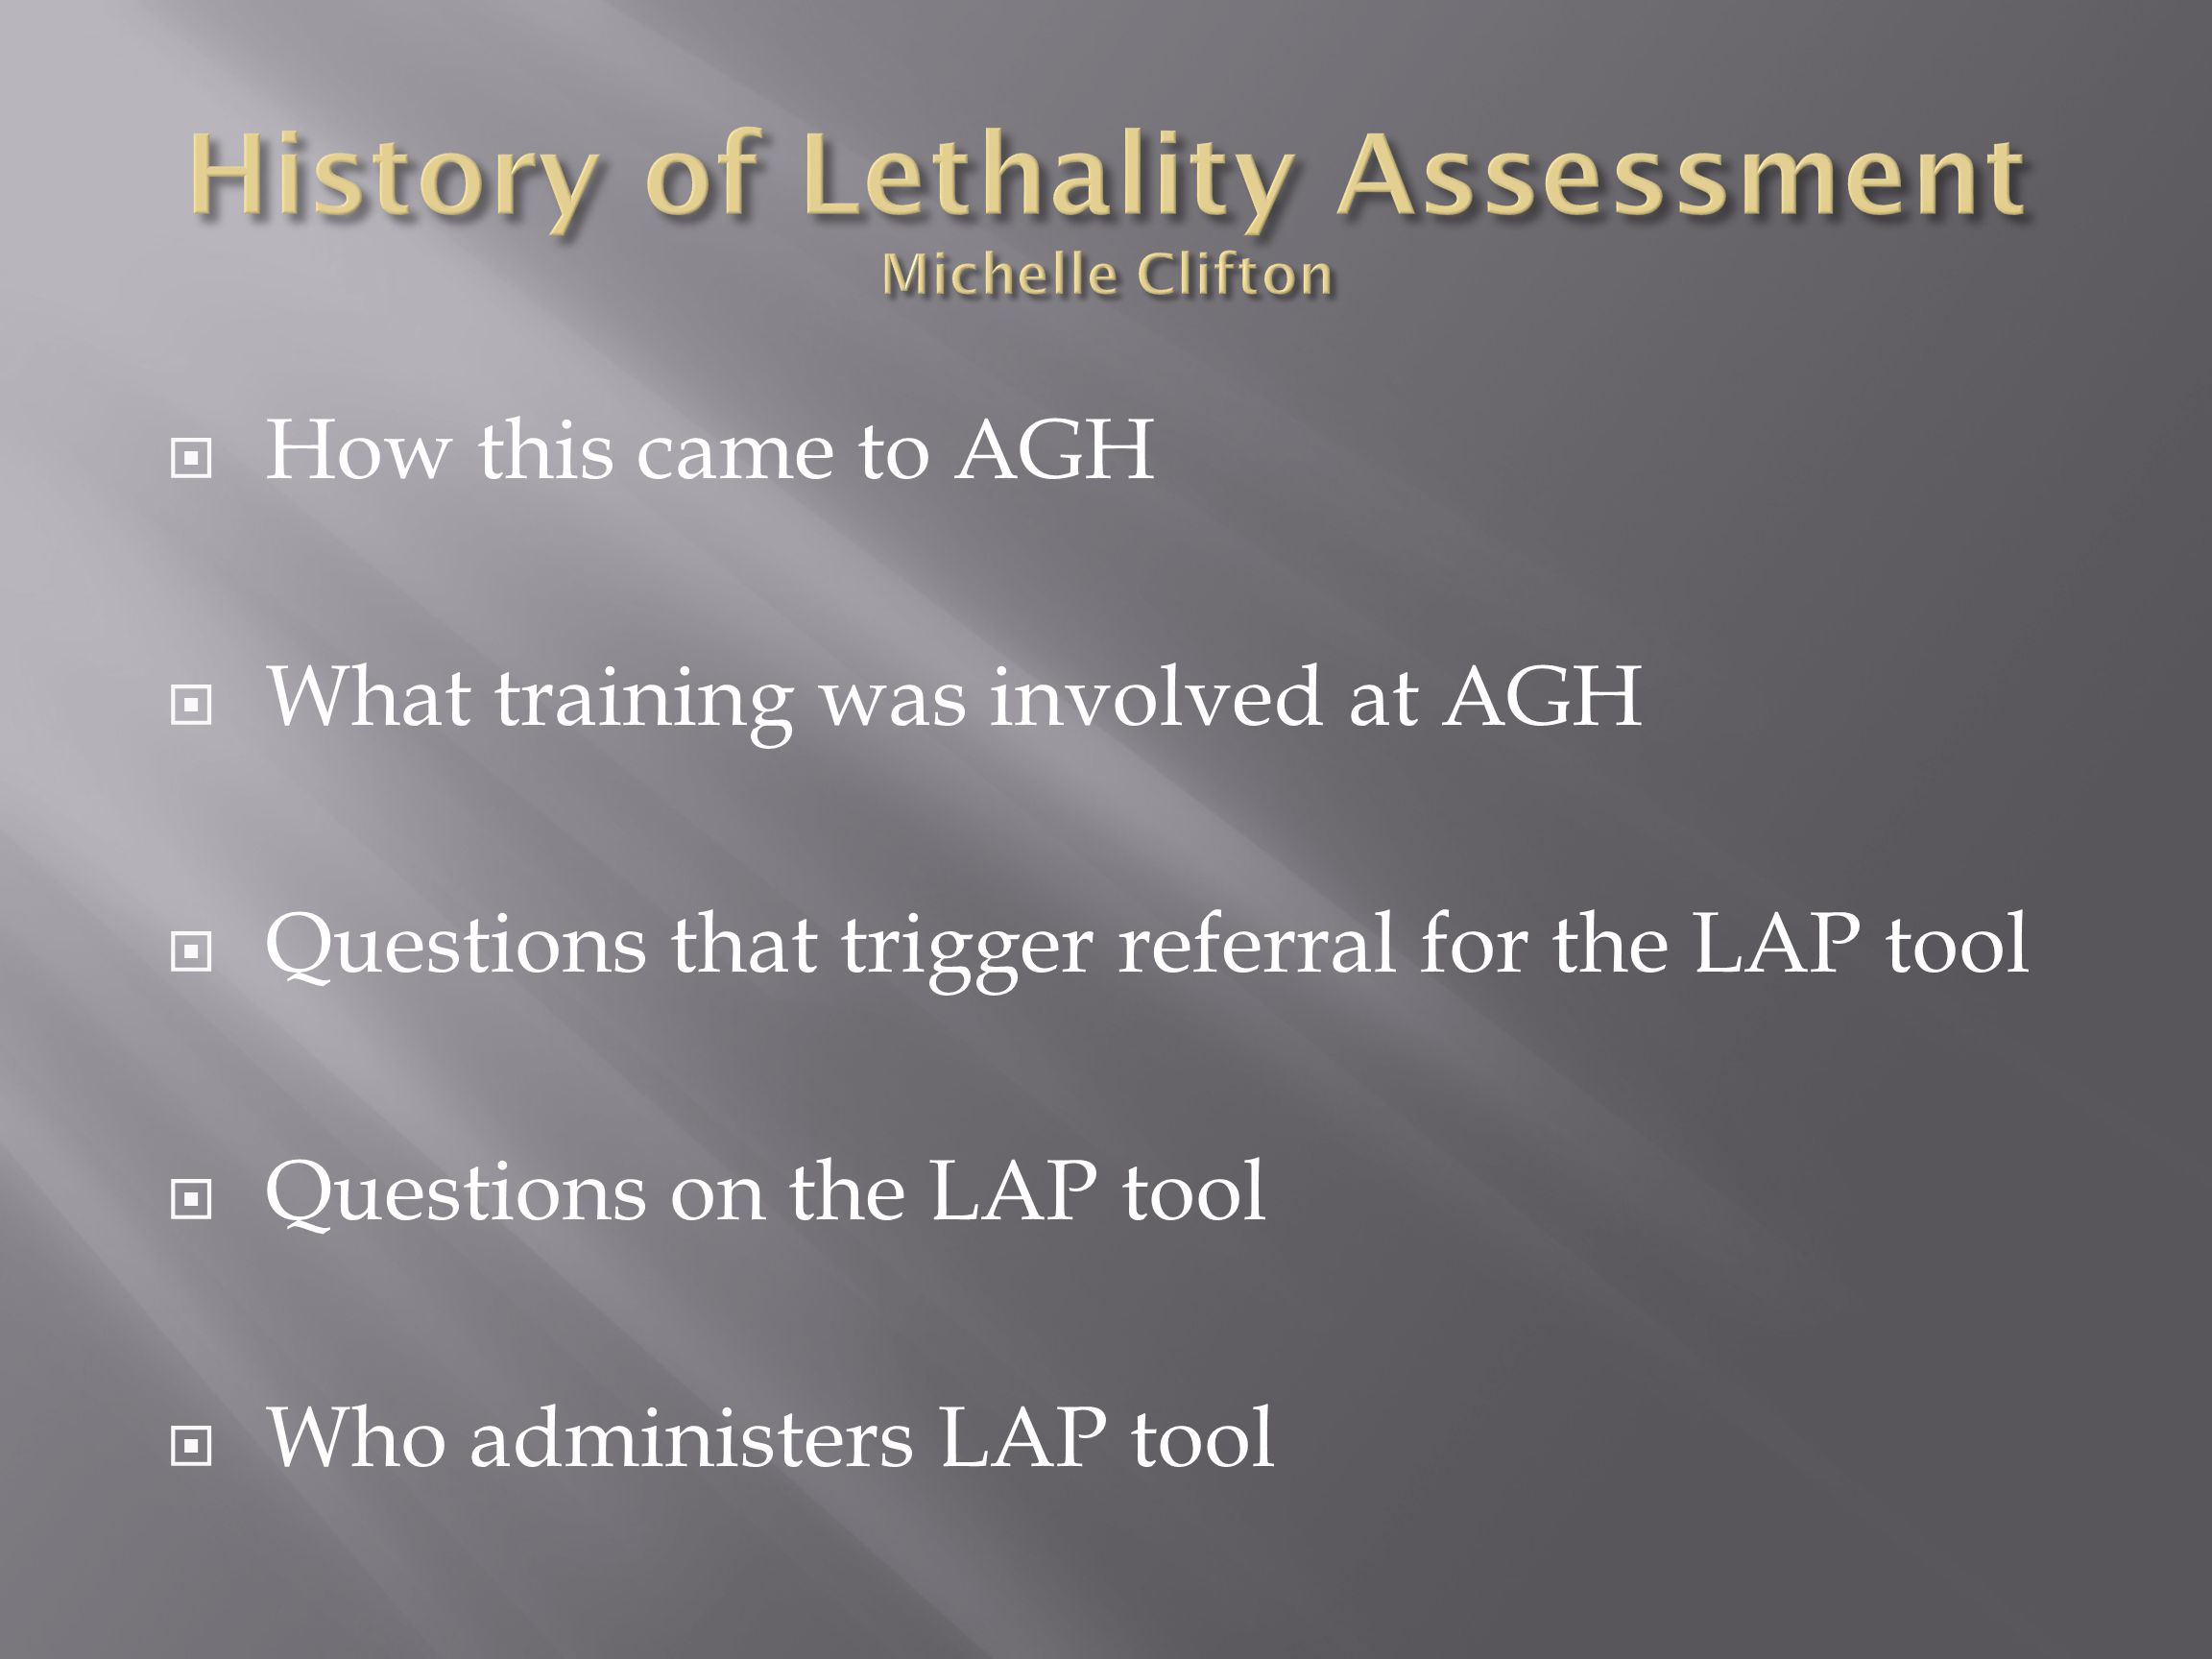  How this came to AGH  What training was involved at AGH  Questions that trigger referral for the LAP tool  Questions on the LAP tool  Who administers LAP tool